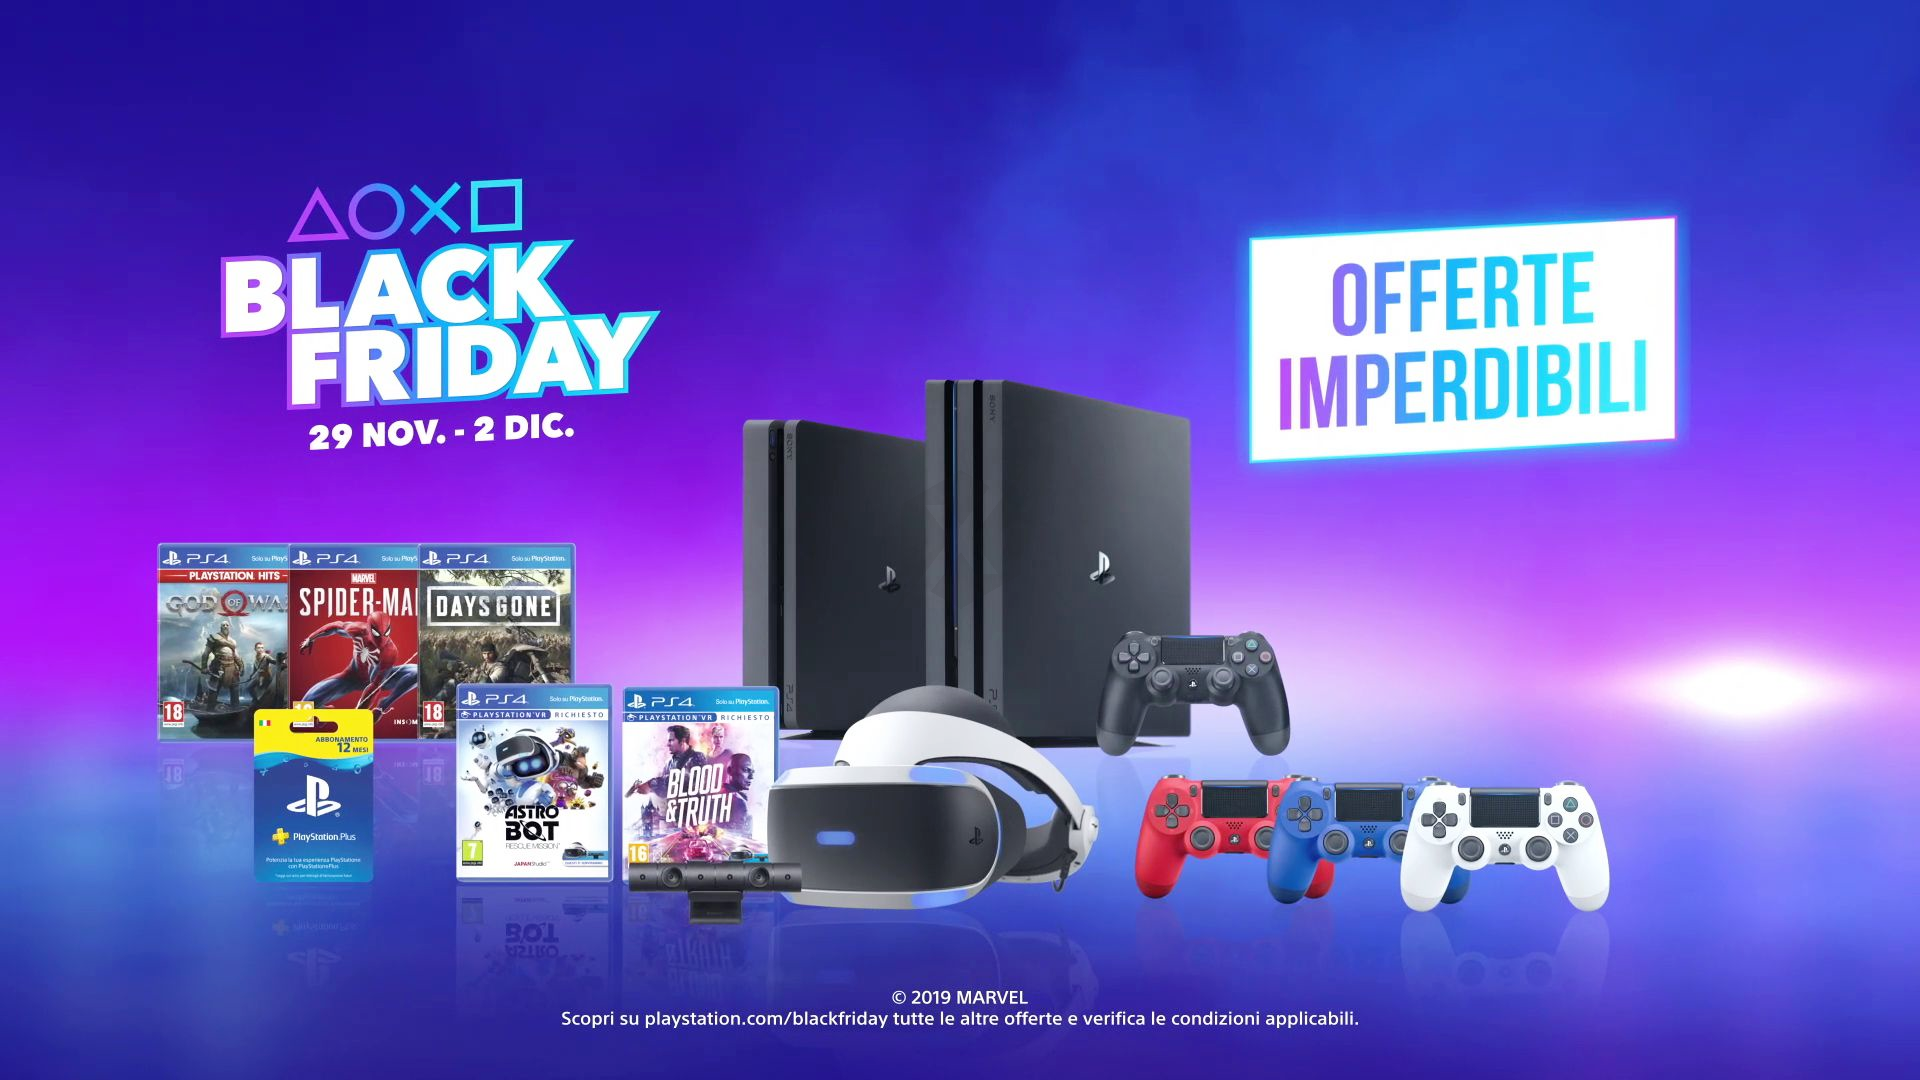 Ps4 Pro Playstation 4 Psvr And Games All Offers For Sony Black Friday 2019 Playstation Playstation 4 Ps4